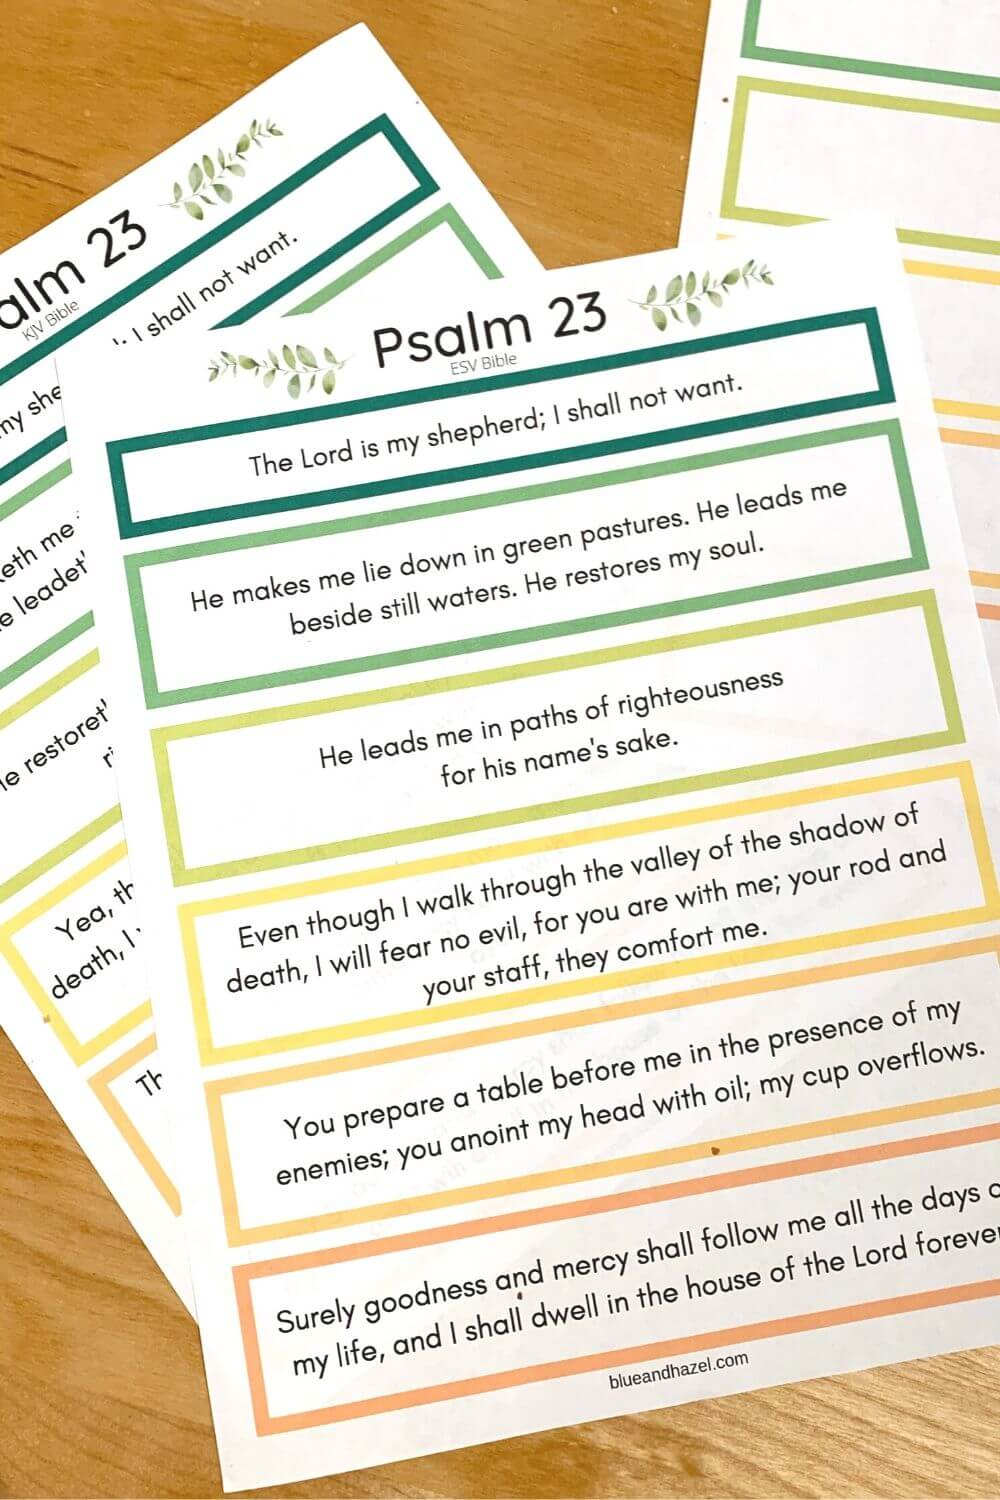 Psalm 23 printable for memory work, including KJV & ESV versions.